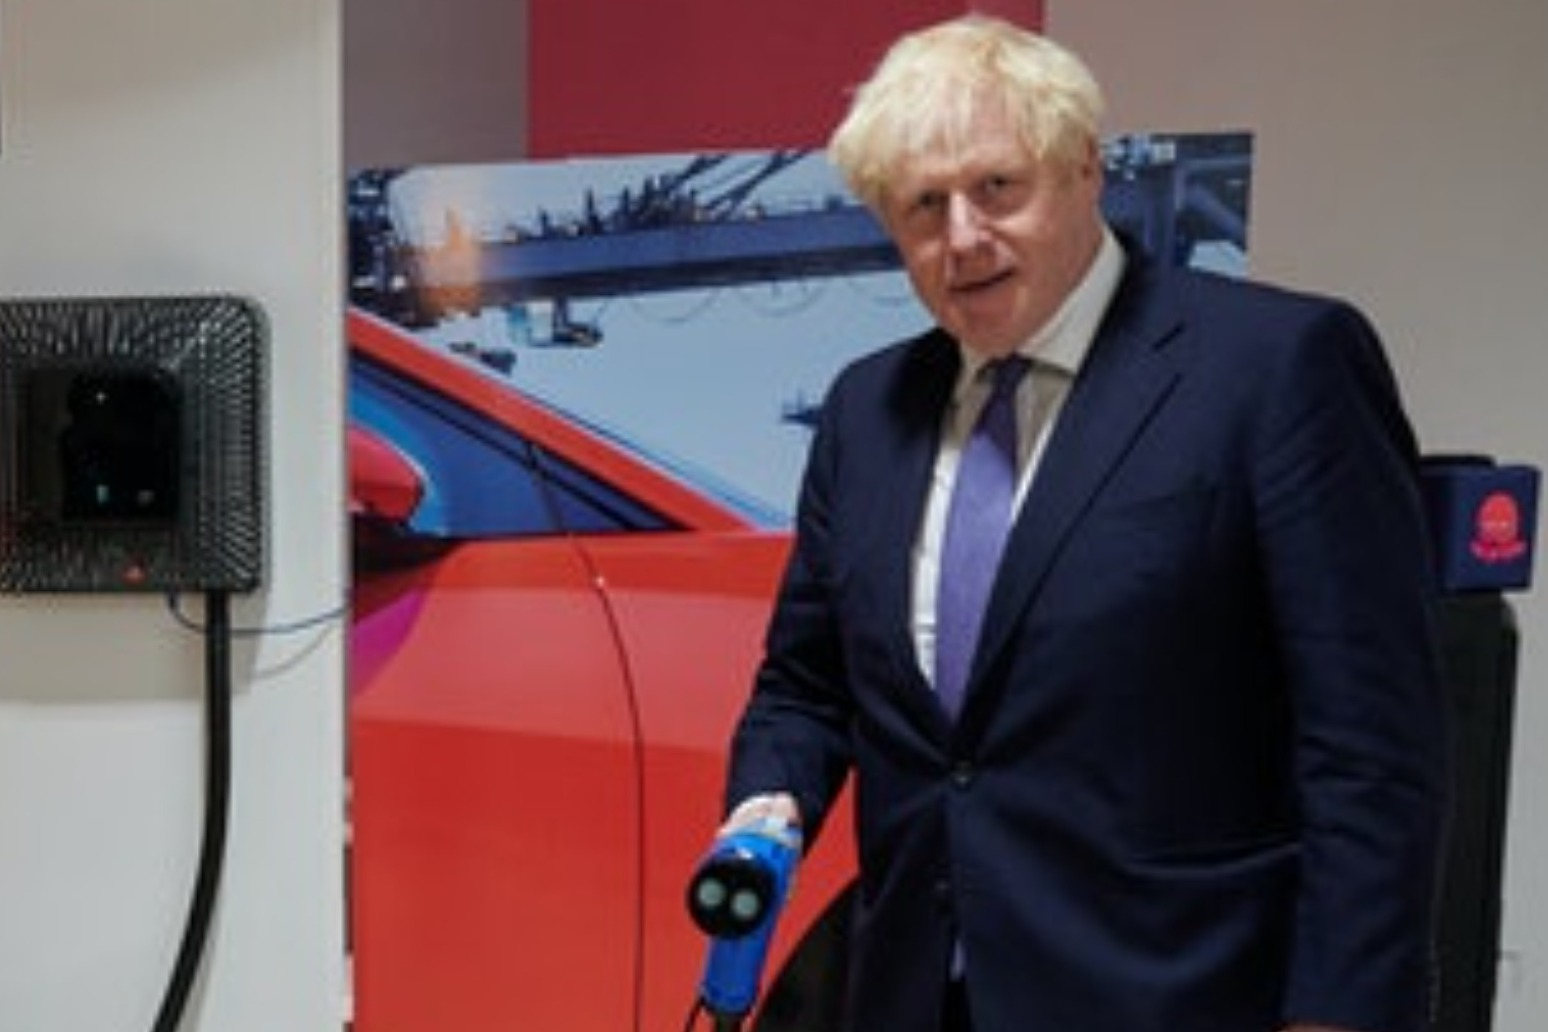 Green energy surge will see every home powered by wind farms – Johnson